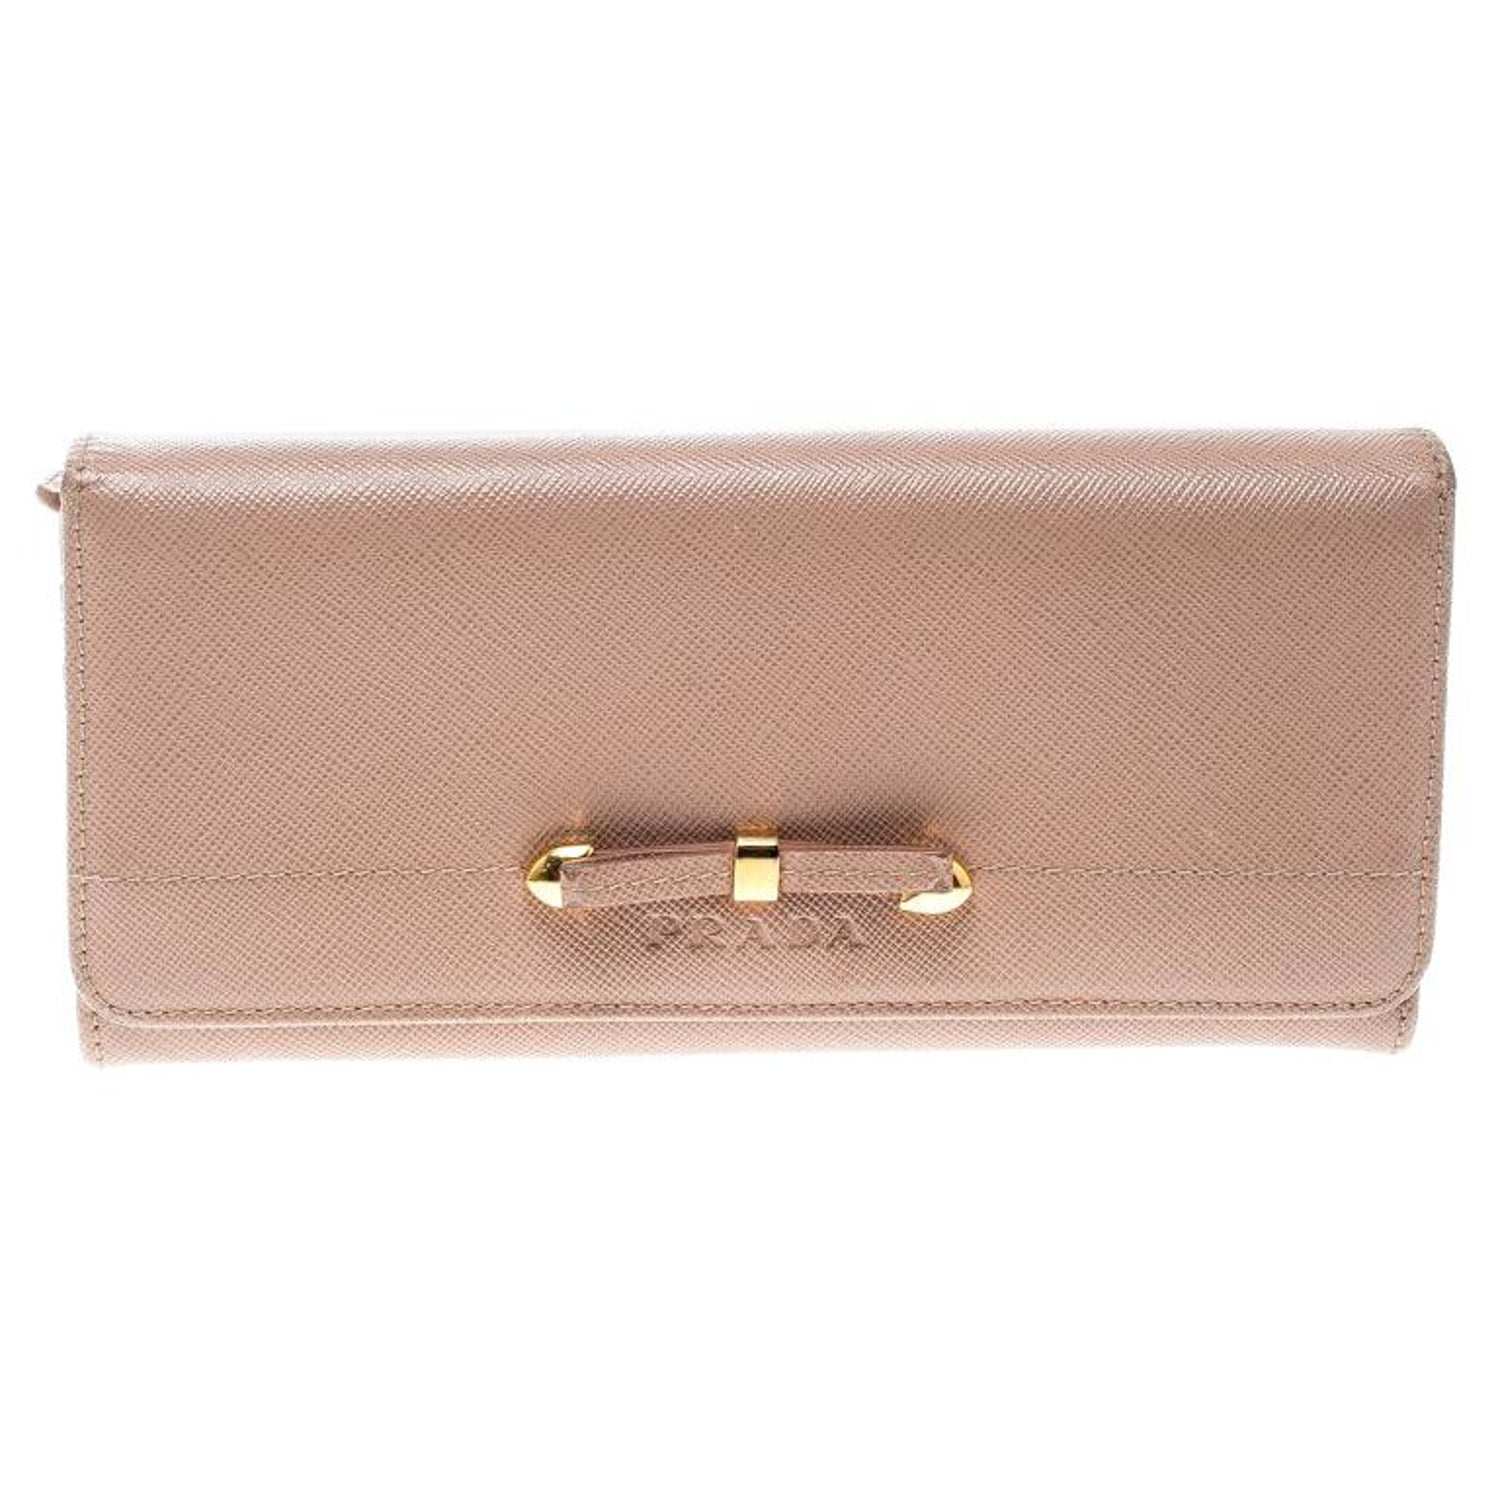 1b155fdfd666 Prada Beige Saffiano Leather Bow Continental Wallet For Sale at 1stdibs